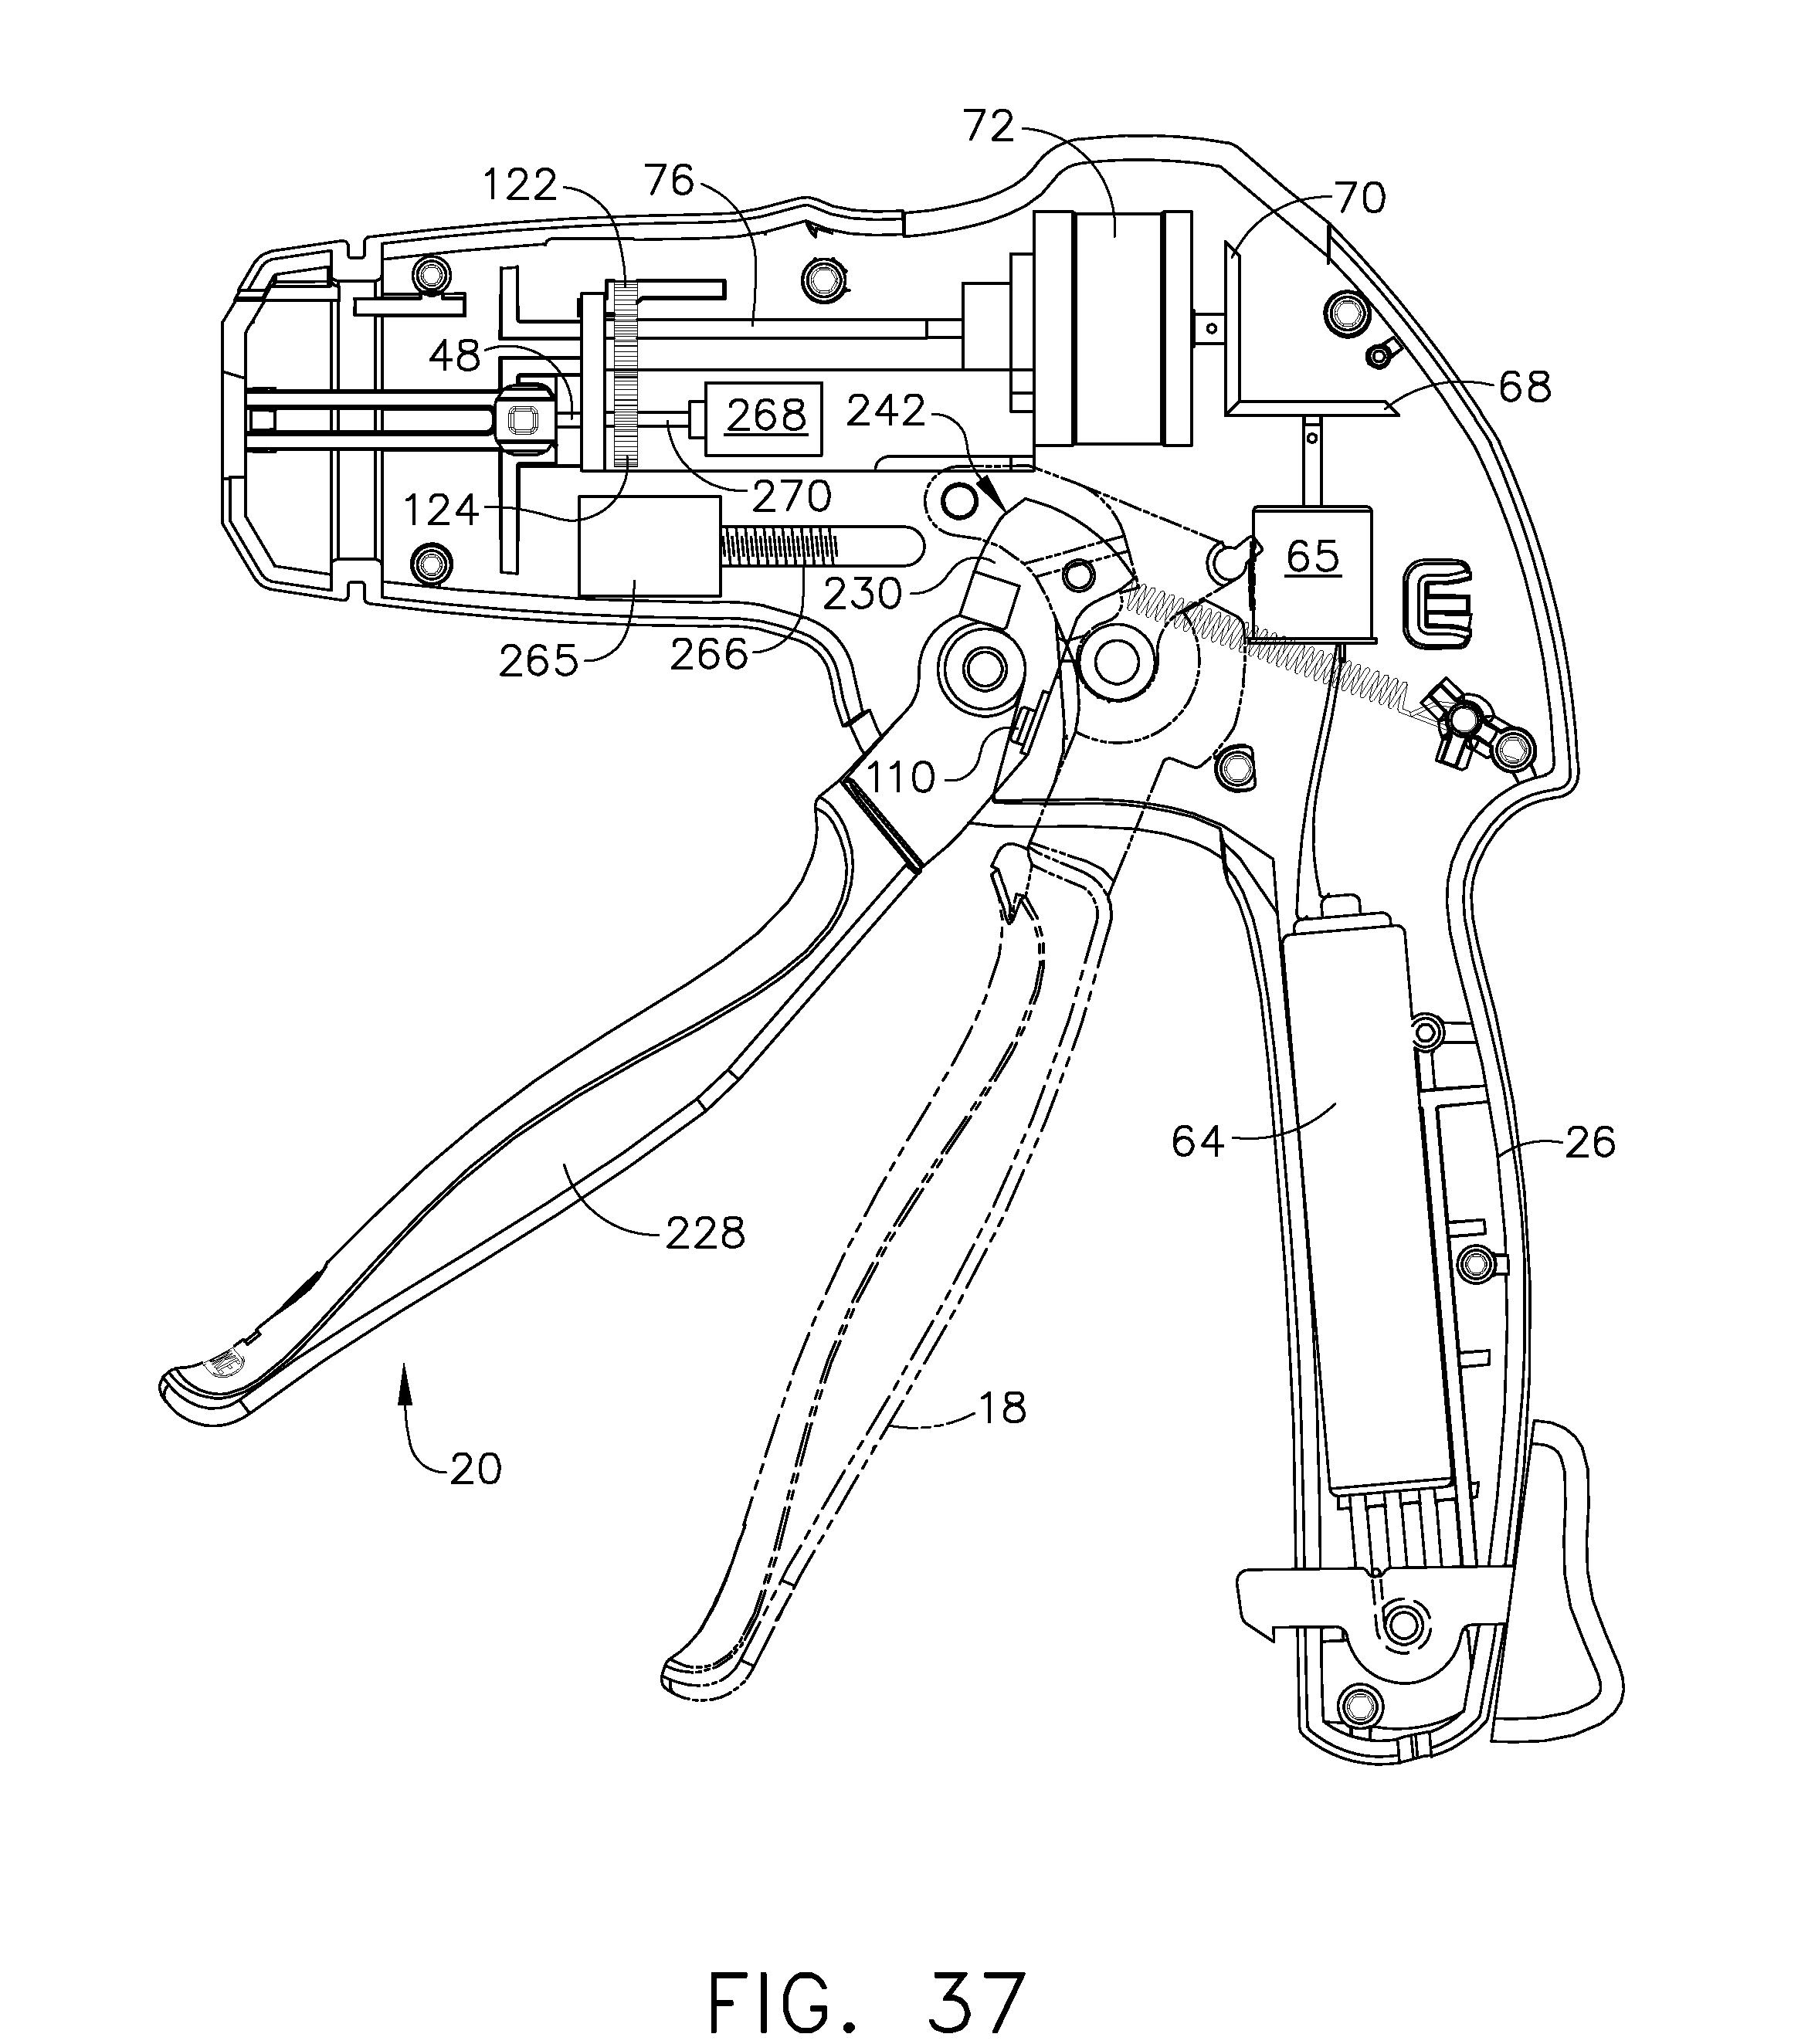 us8292155b2 motor driven surgical cutting and fastening instrument Dual Battery Switch Wiring Diagram us8292155b2 motor driven surgical cutting and fastening instrument with tactile position feedback patents